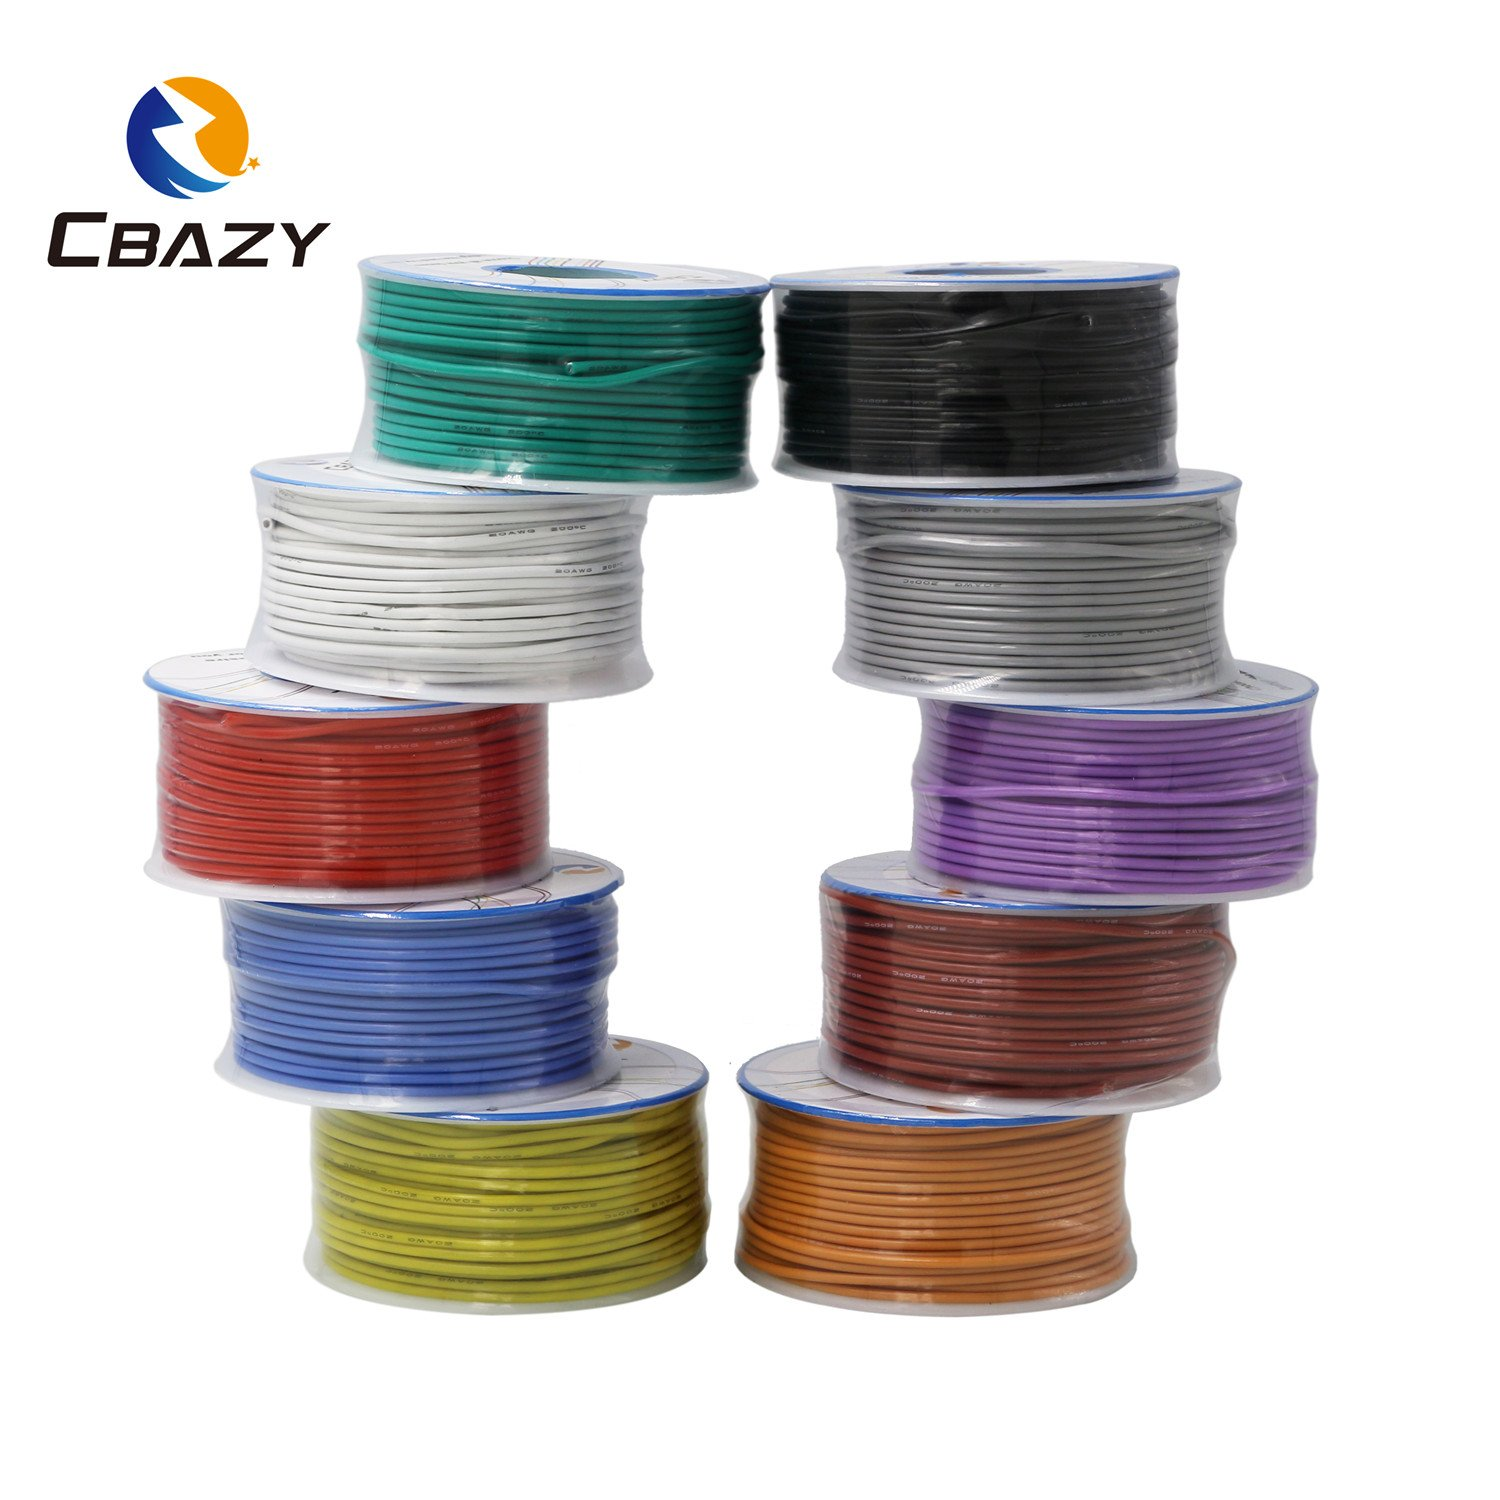 CBAZY™ Hook up Wire (Stranded Wire) 22 Gauge Flexible Silicone Wire 22AWG 25M (82 Feet) Electrical Wire Green by CBAZY (Image #6)